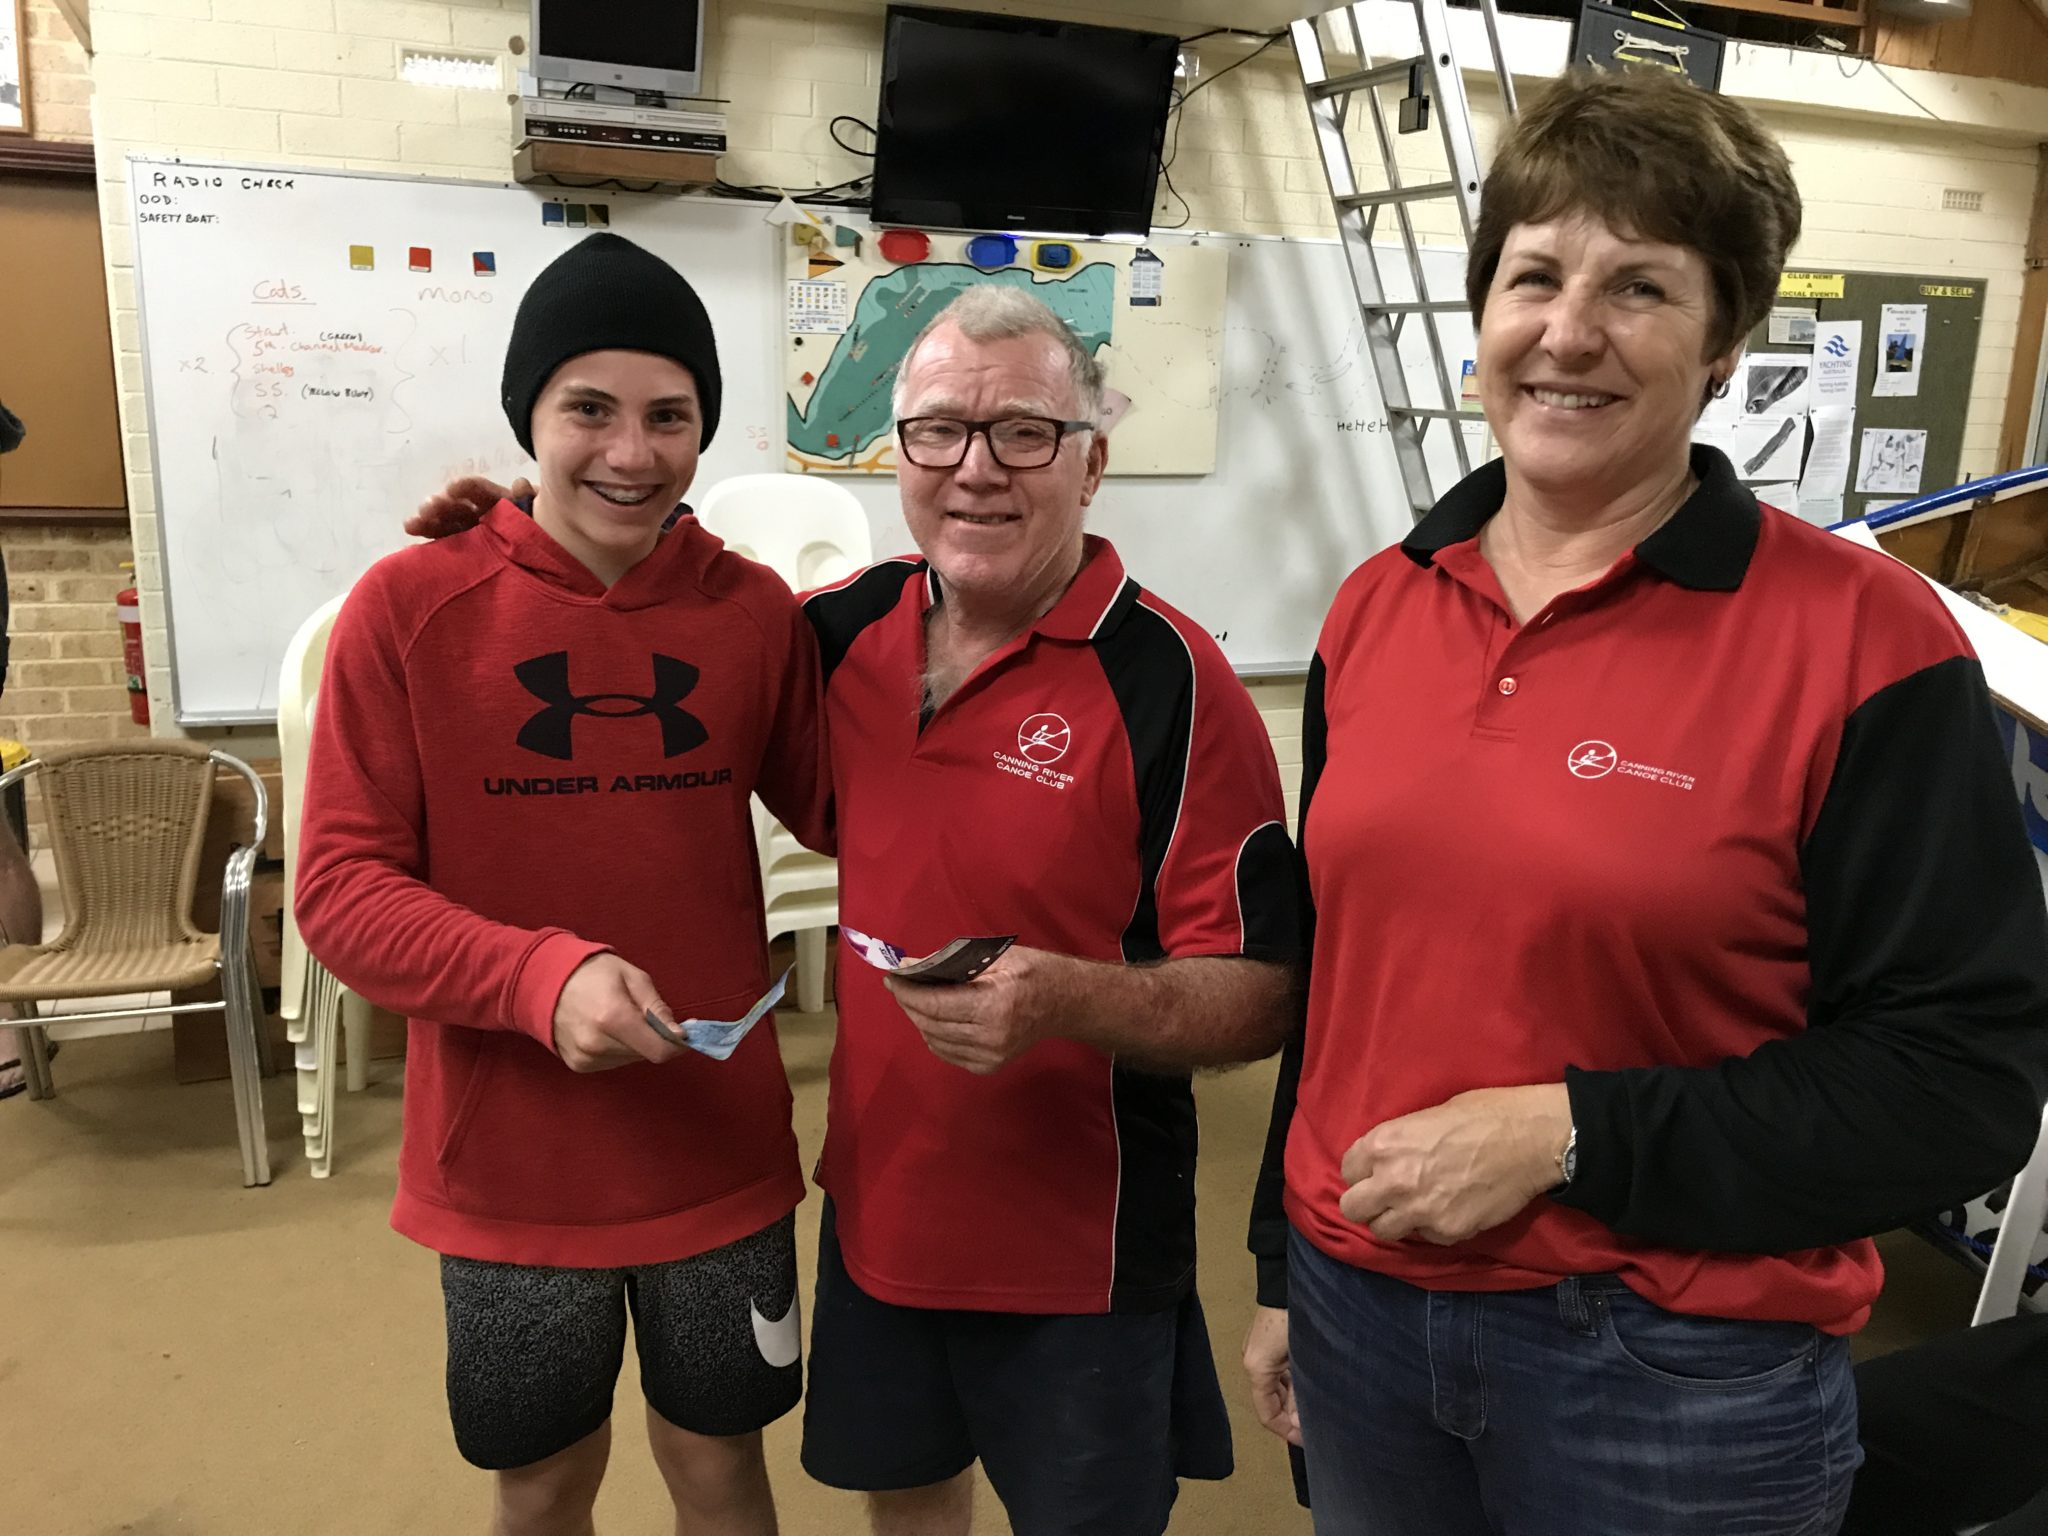 Tues 19th September 2017 : Tonight's photo shows club Treasurer Simone Burge presenting David Gardiner and Tim Hyde with movie vouchers.